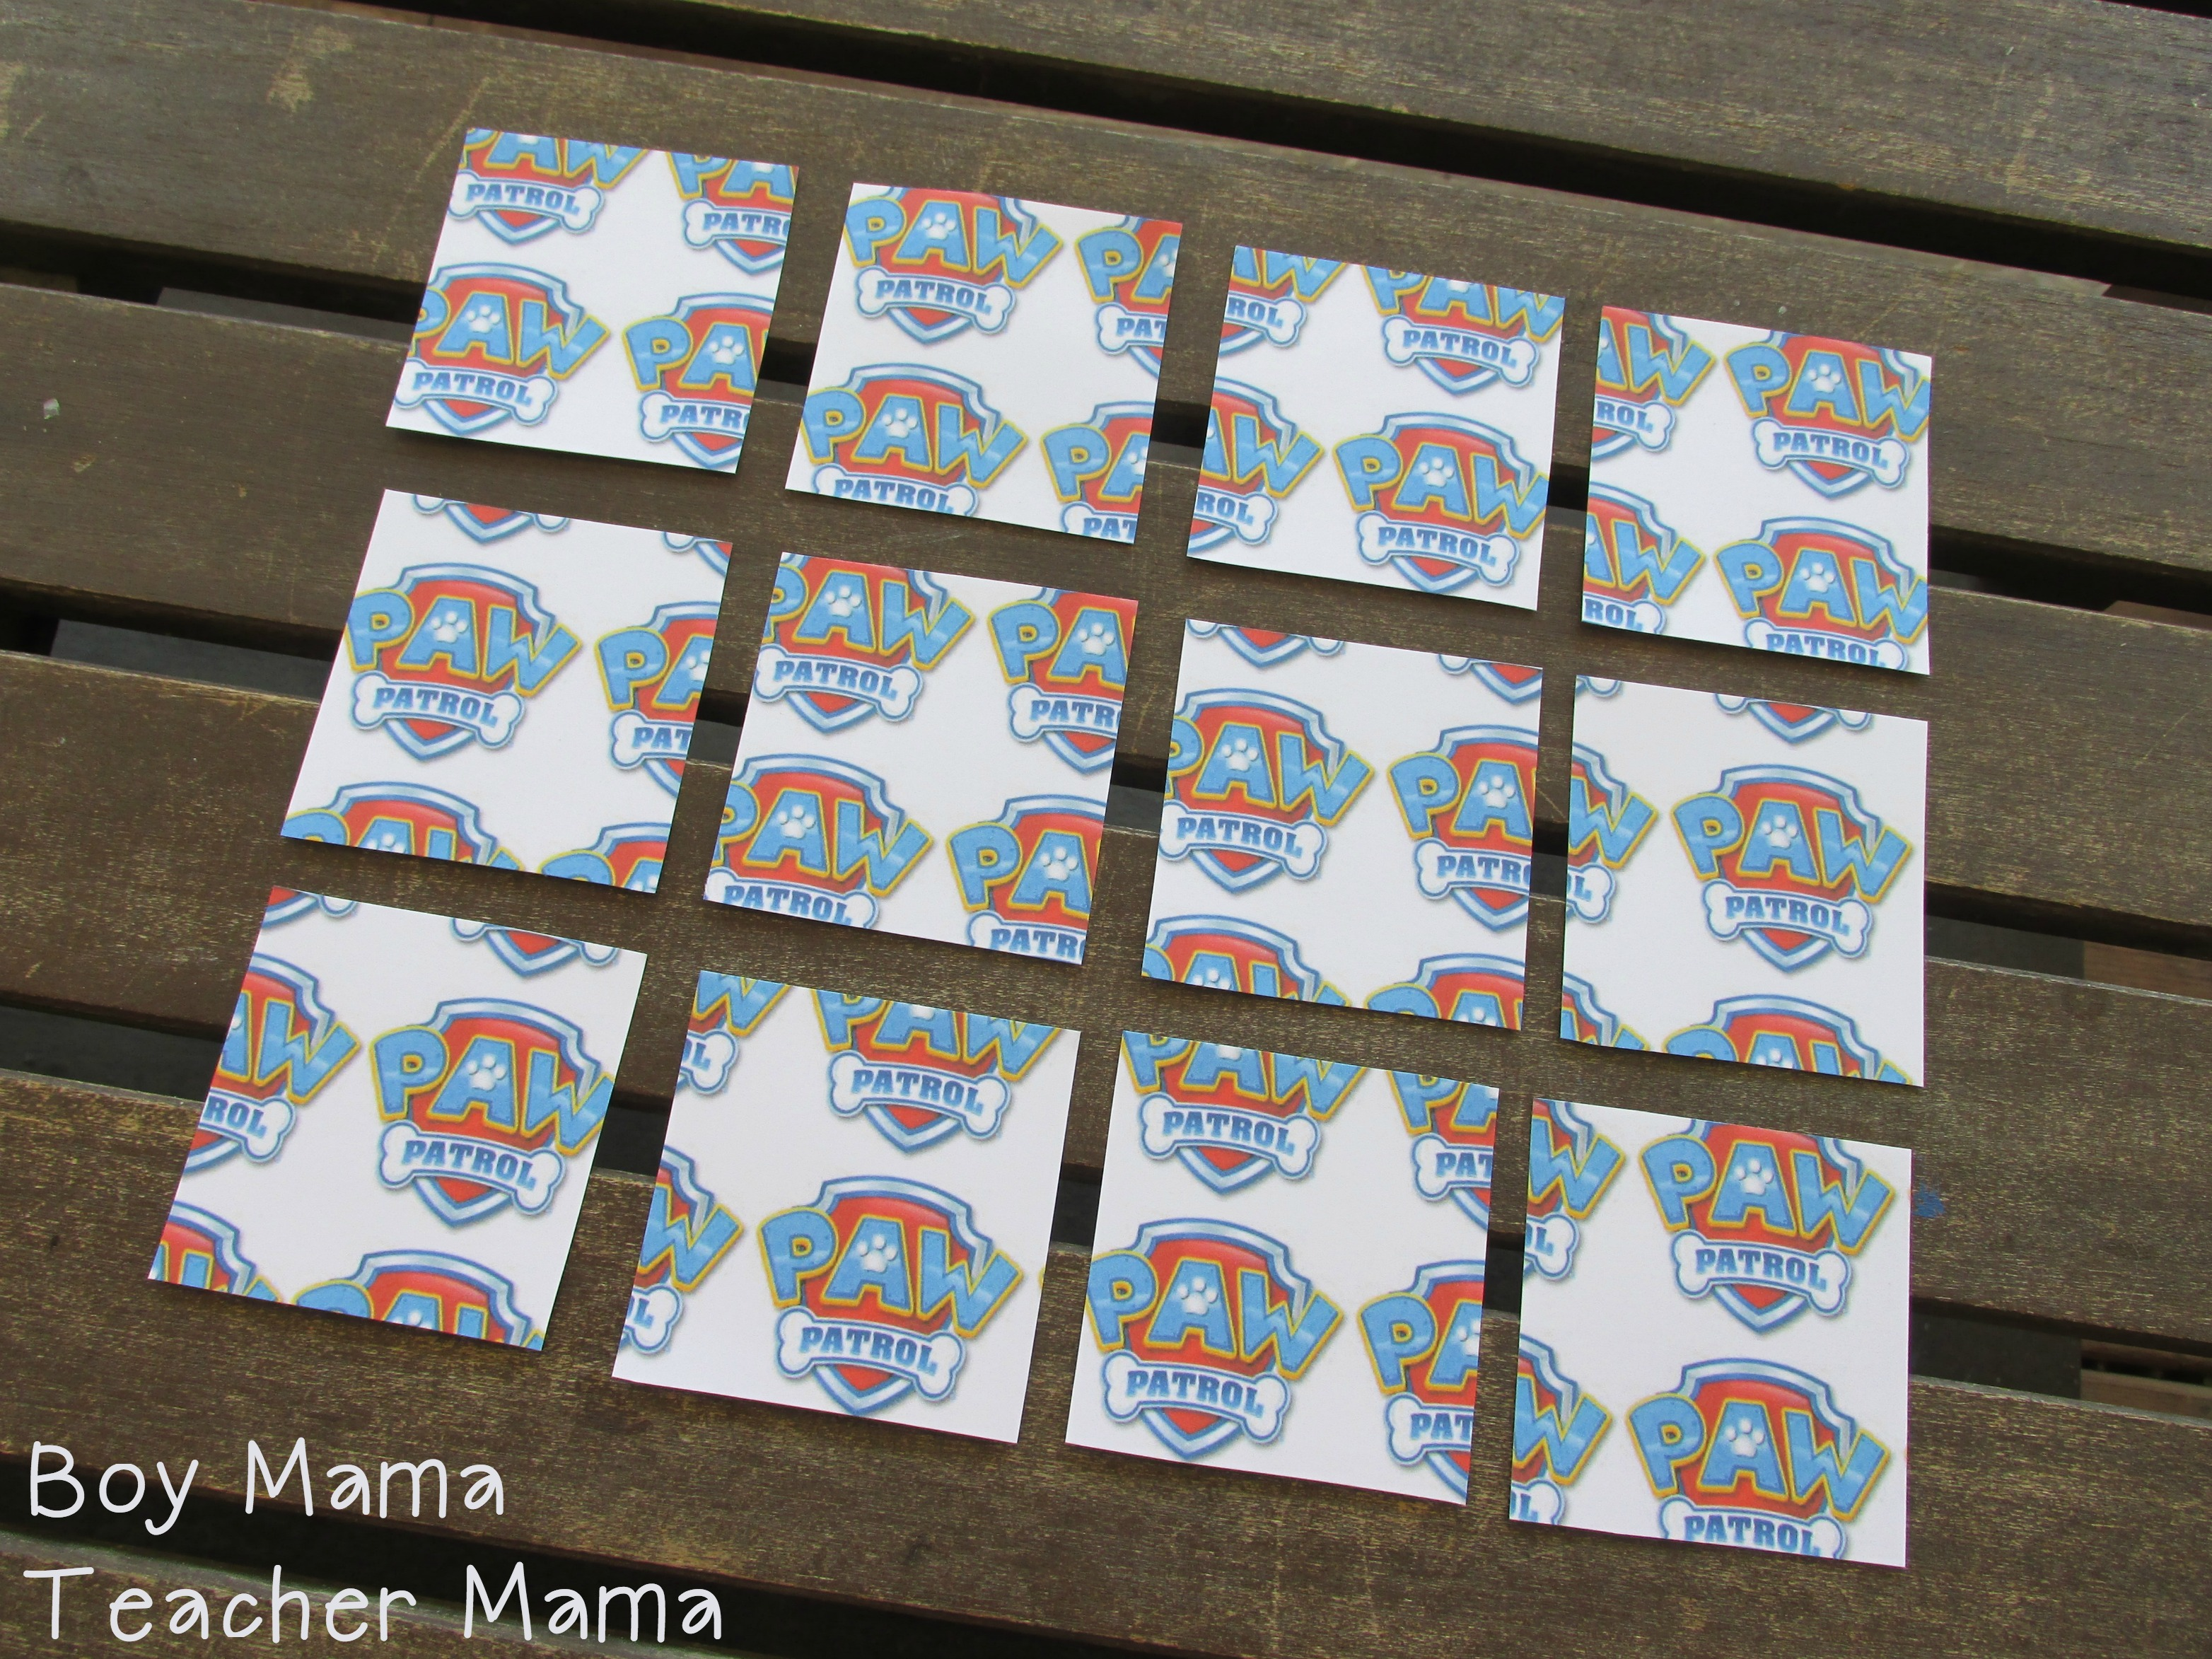 picture regarding Paw Patrol Printable Birthday Card identified as Boy Mama: No cost Paw Patrol Printable Playing cards - Boy Mama Instructor